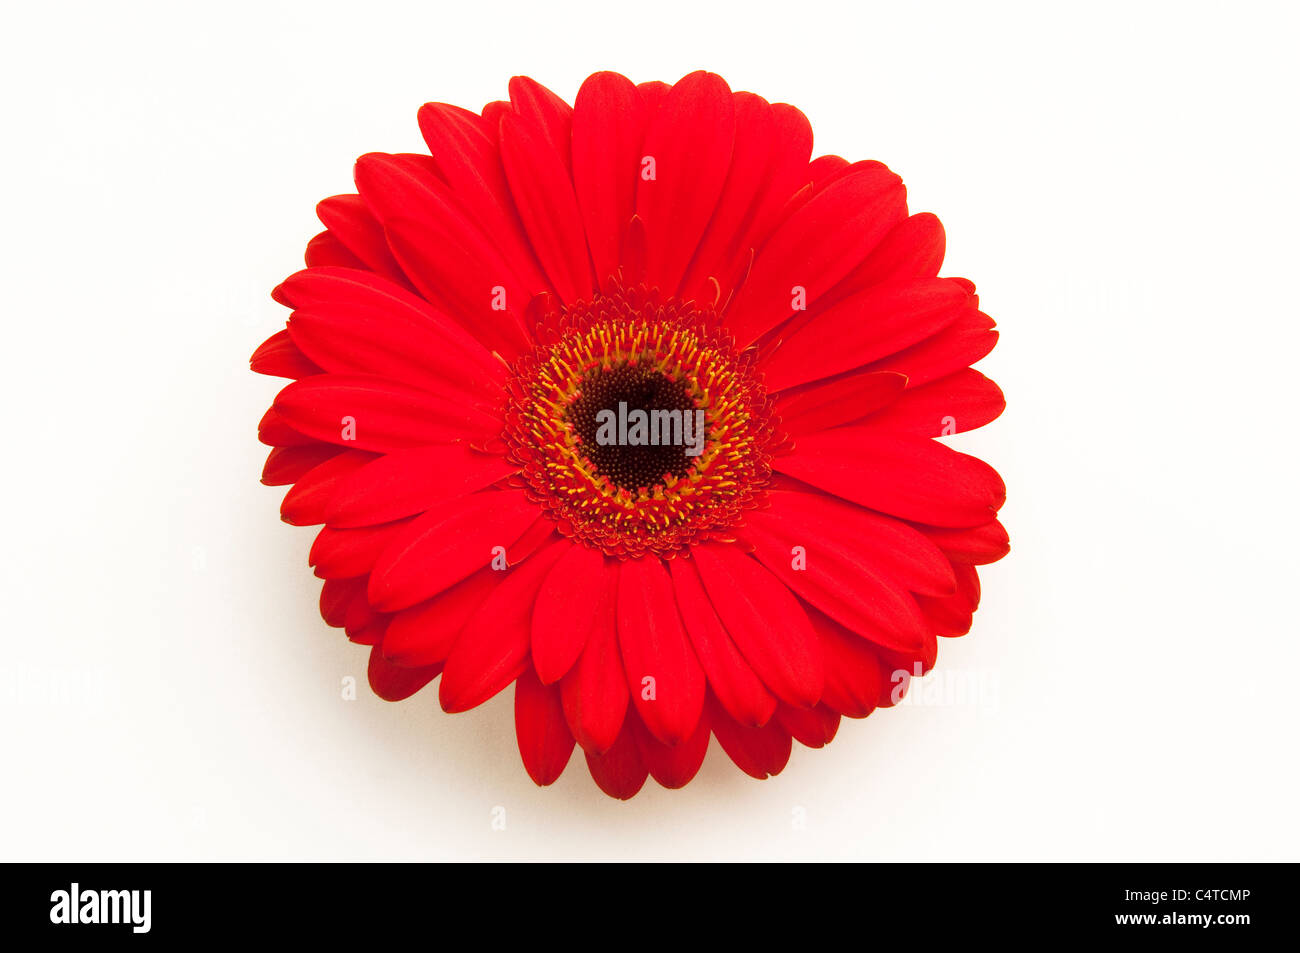 Barberton Daisy, Gerbera, Transvaal Daisy (Gerbera hybrid), red flower. Studio picture against a white background. - Stock Image